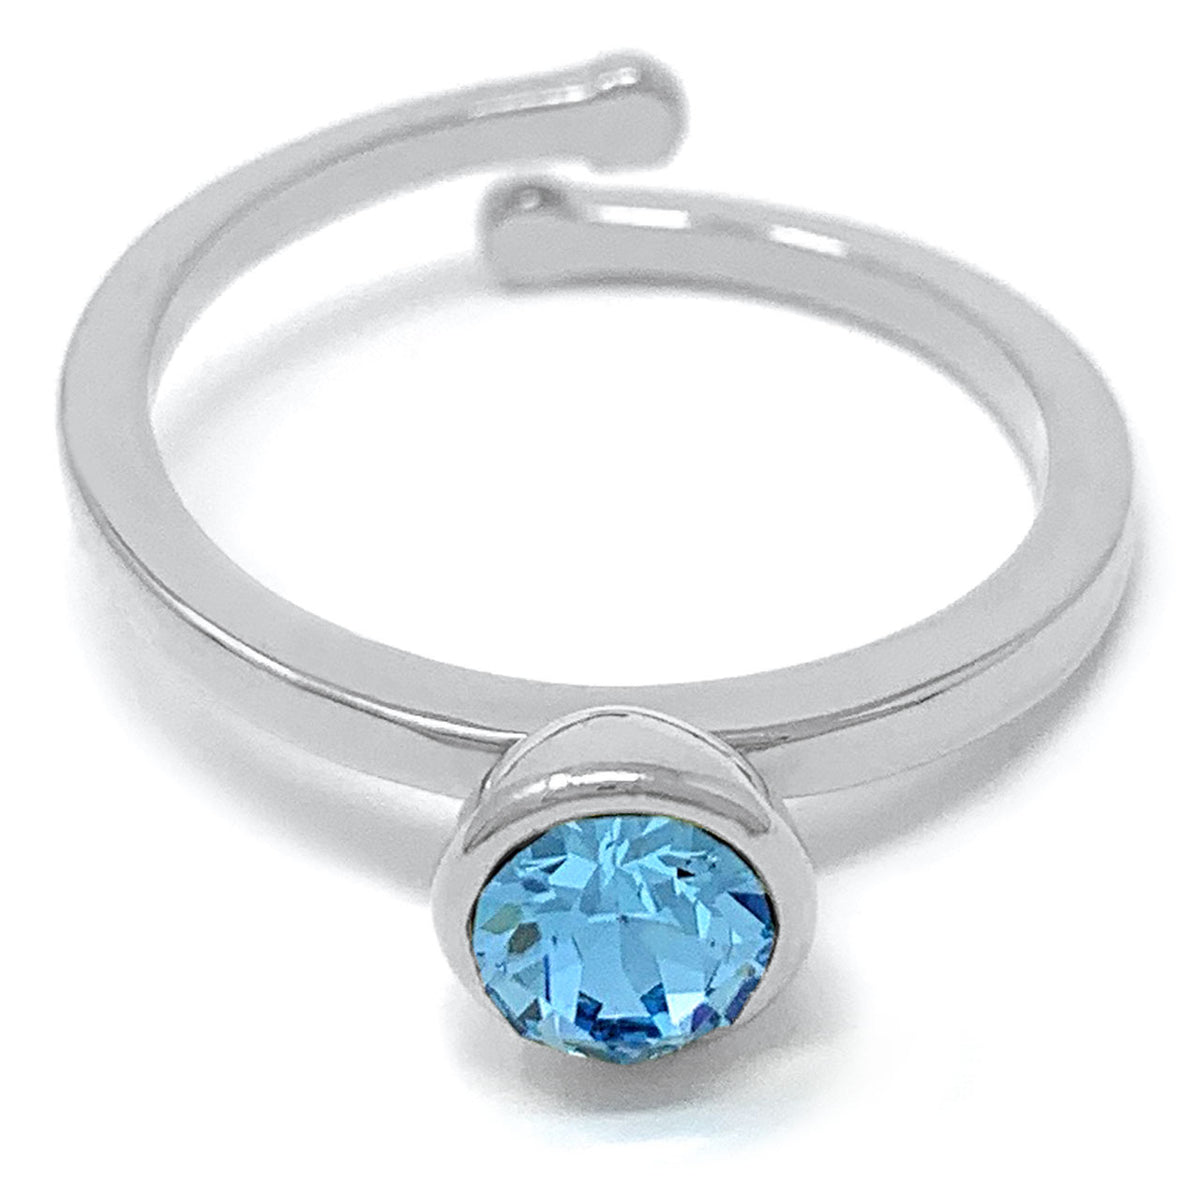 Harley Adjustable Ring with Blue Aquamarine Round Crystals from Swarovski Silver Toned Rhodium Plated - Ed Heart